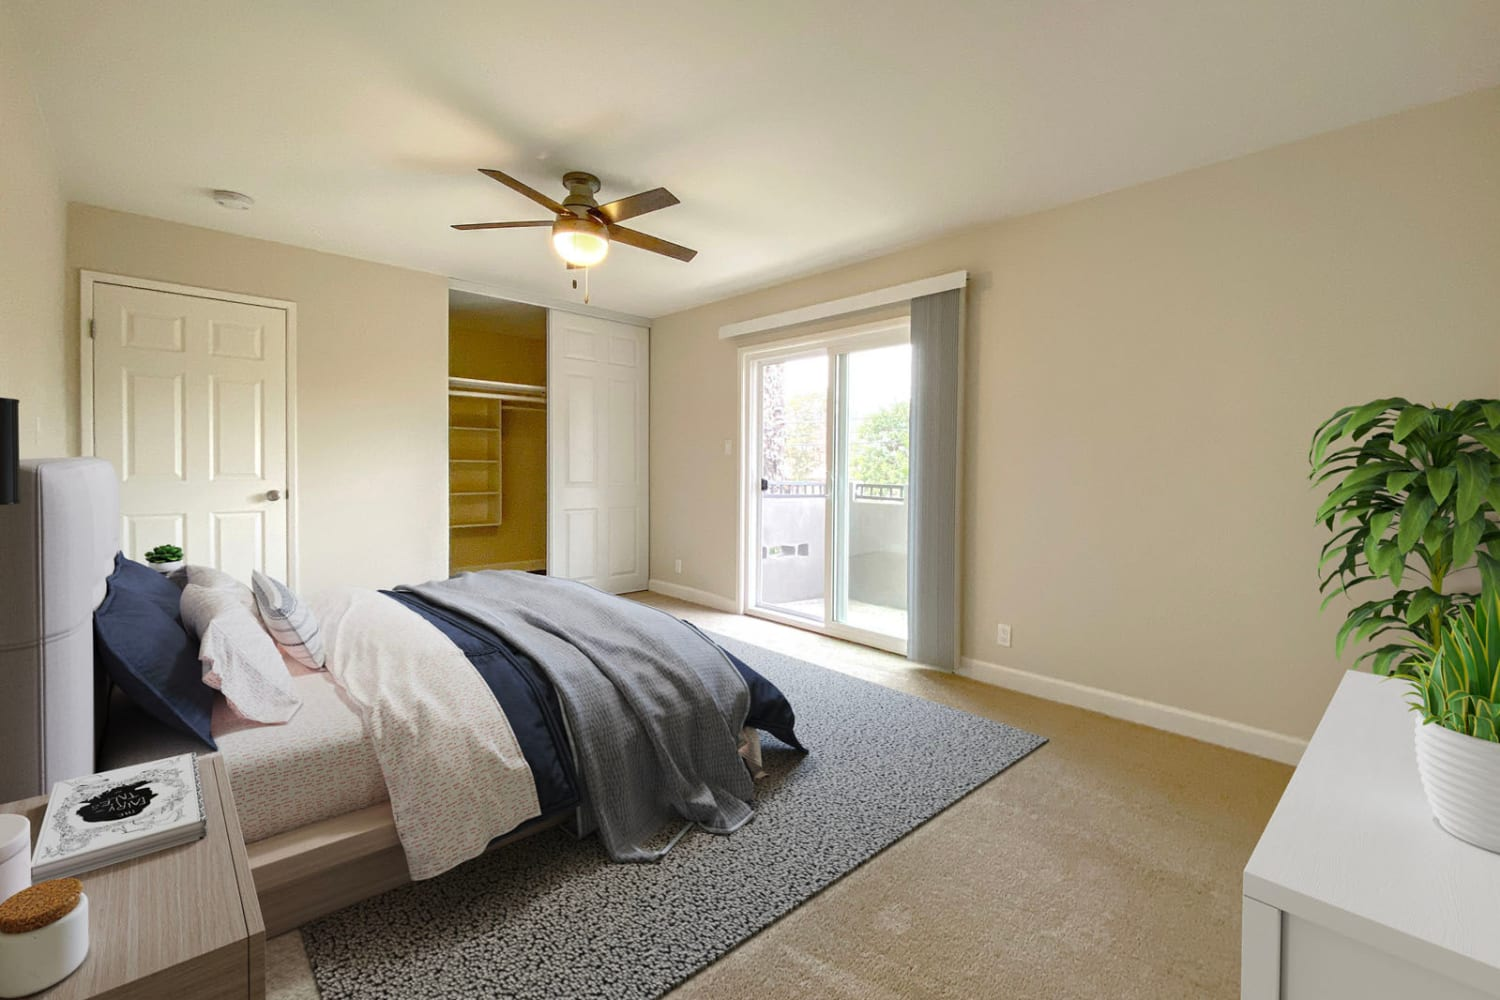 Plush carpeting and a ceiling fan in a model apartment's bedroom at Pleasanton Heights in Pleasanton, California